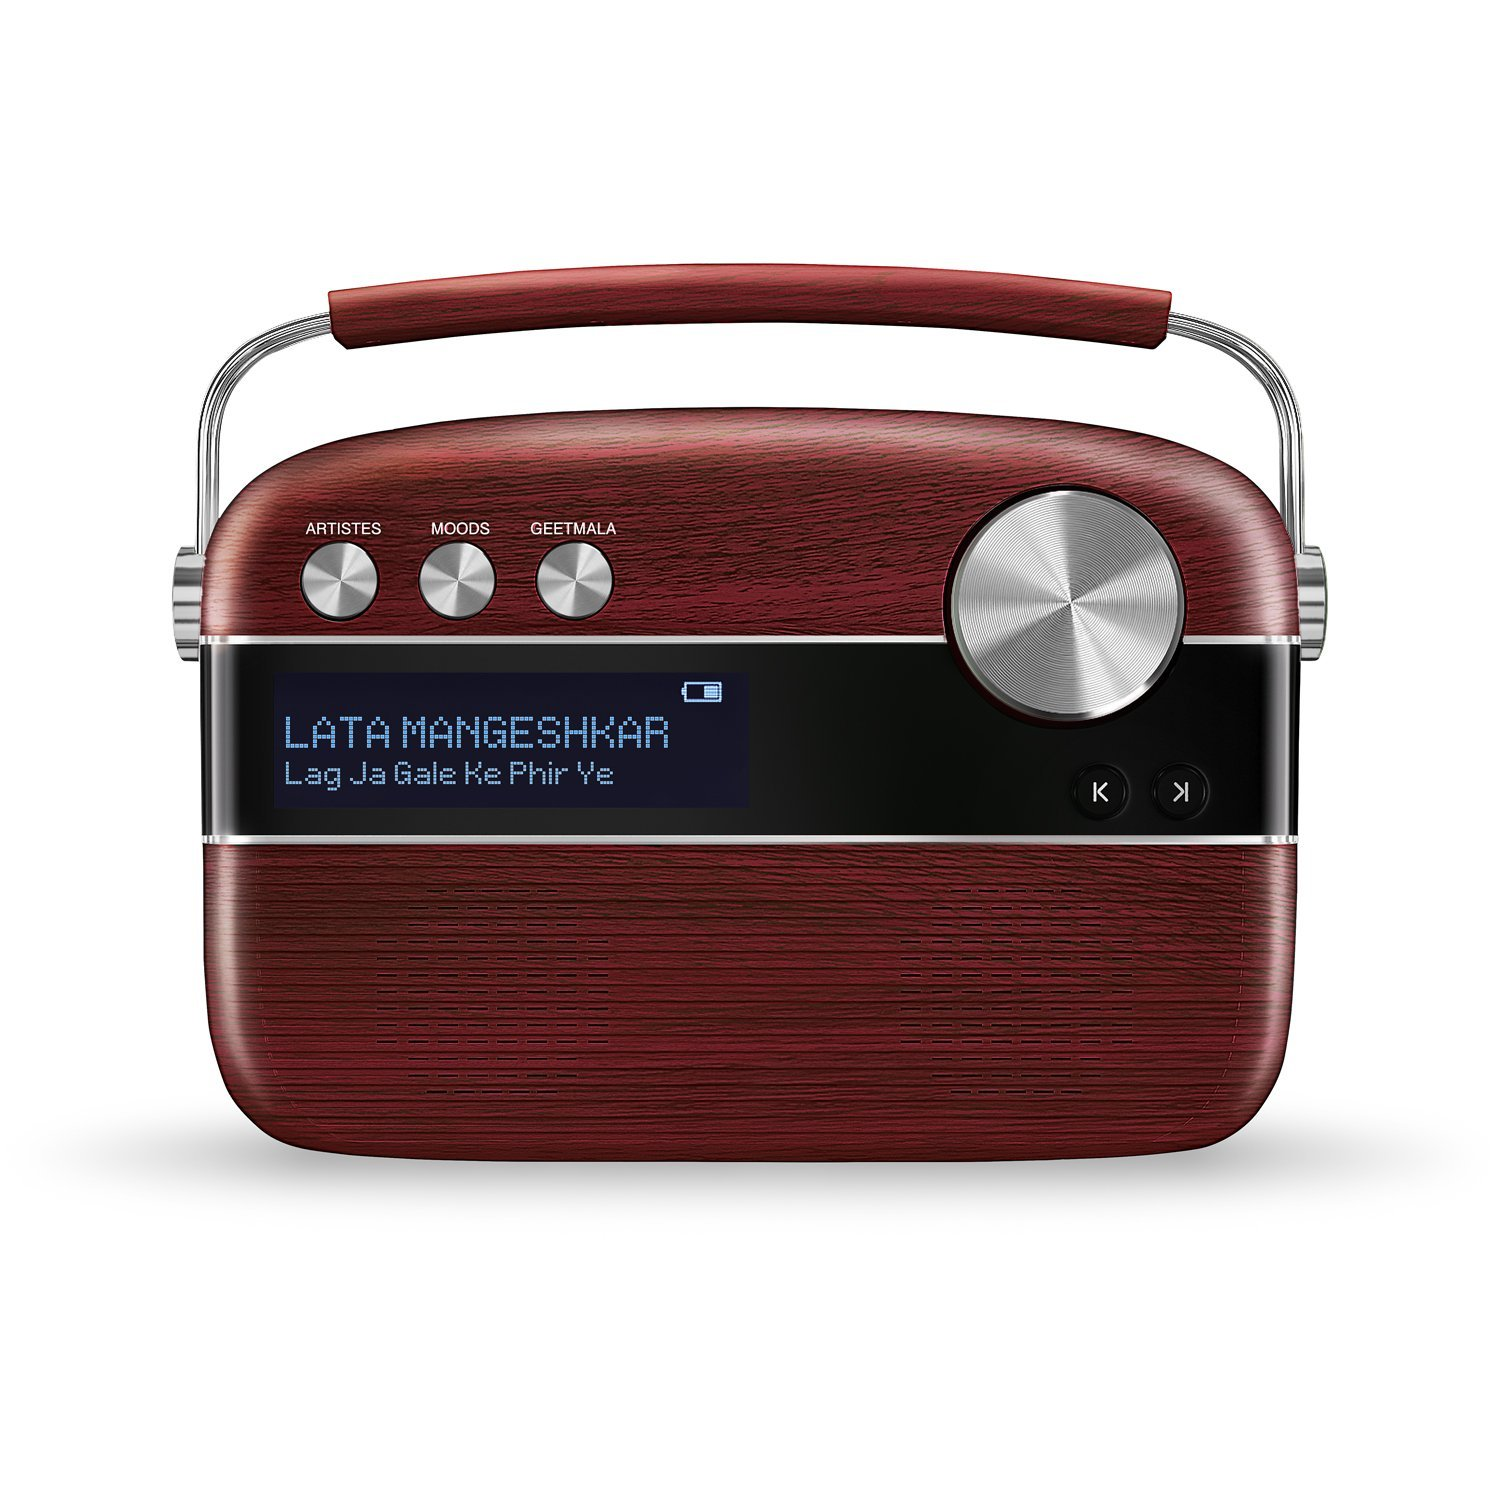 Saregama Carvaan Hindi Portable Digital Music Player (Cherrywood Red) 5000 Songs Music Collection